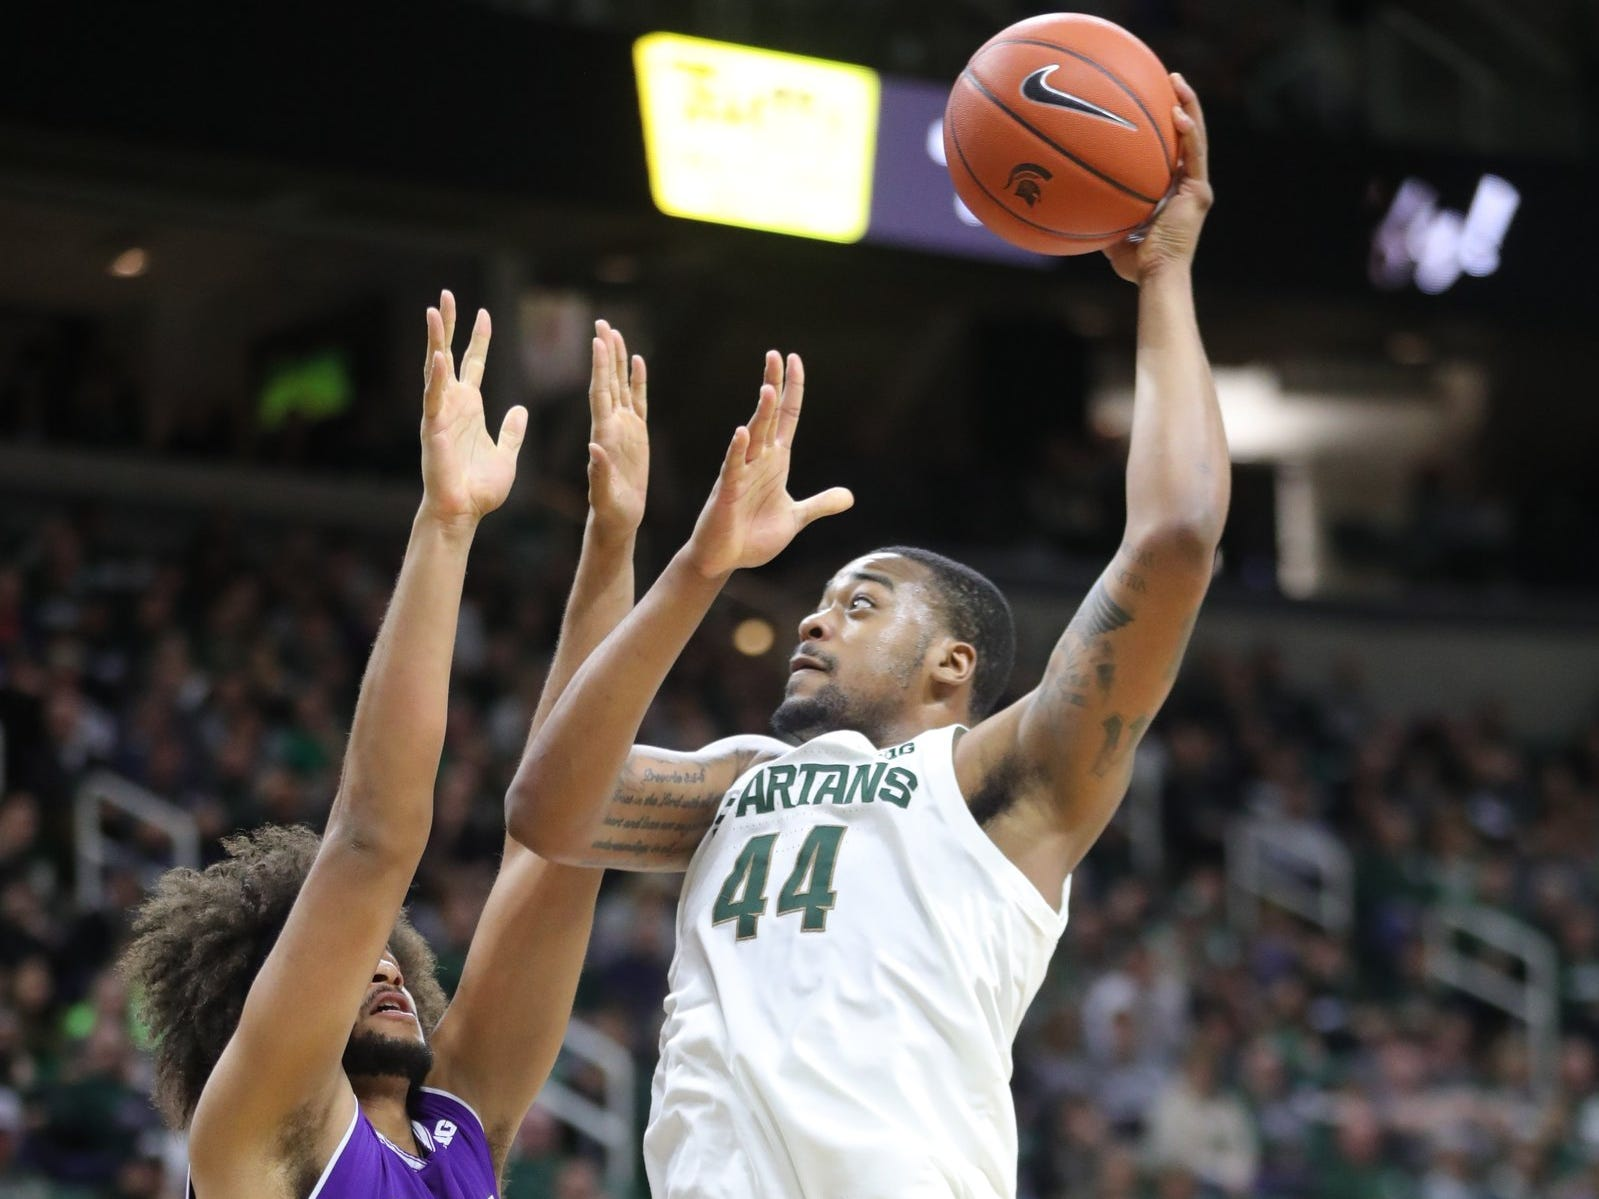 Michigan State forward Nick Ward scores against Northwestern center Barret Benson during the first half Wednesday, Jan. 2, 2019 at the Breslin Center in East Lansing.